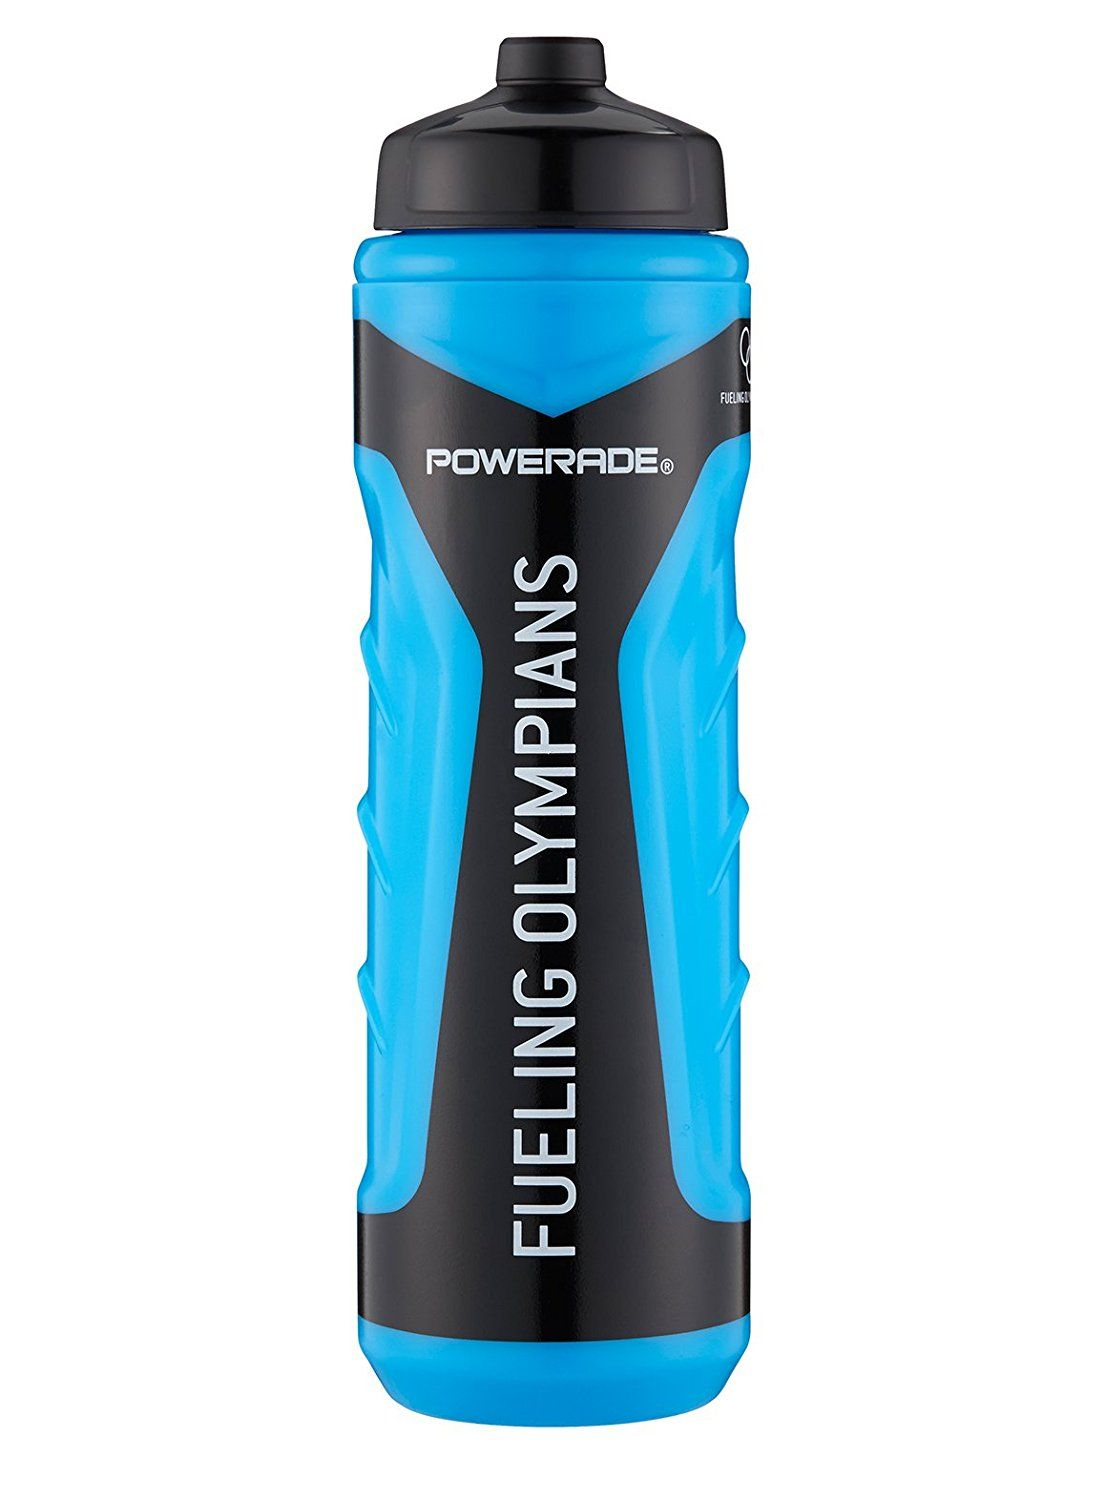 Powerade Sip Water Bottle 28 oz Cyan// Blue